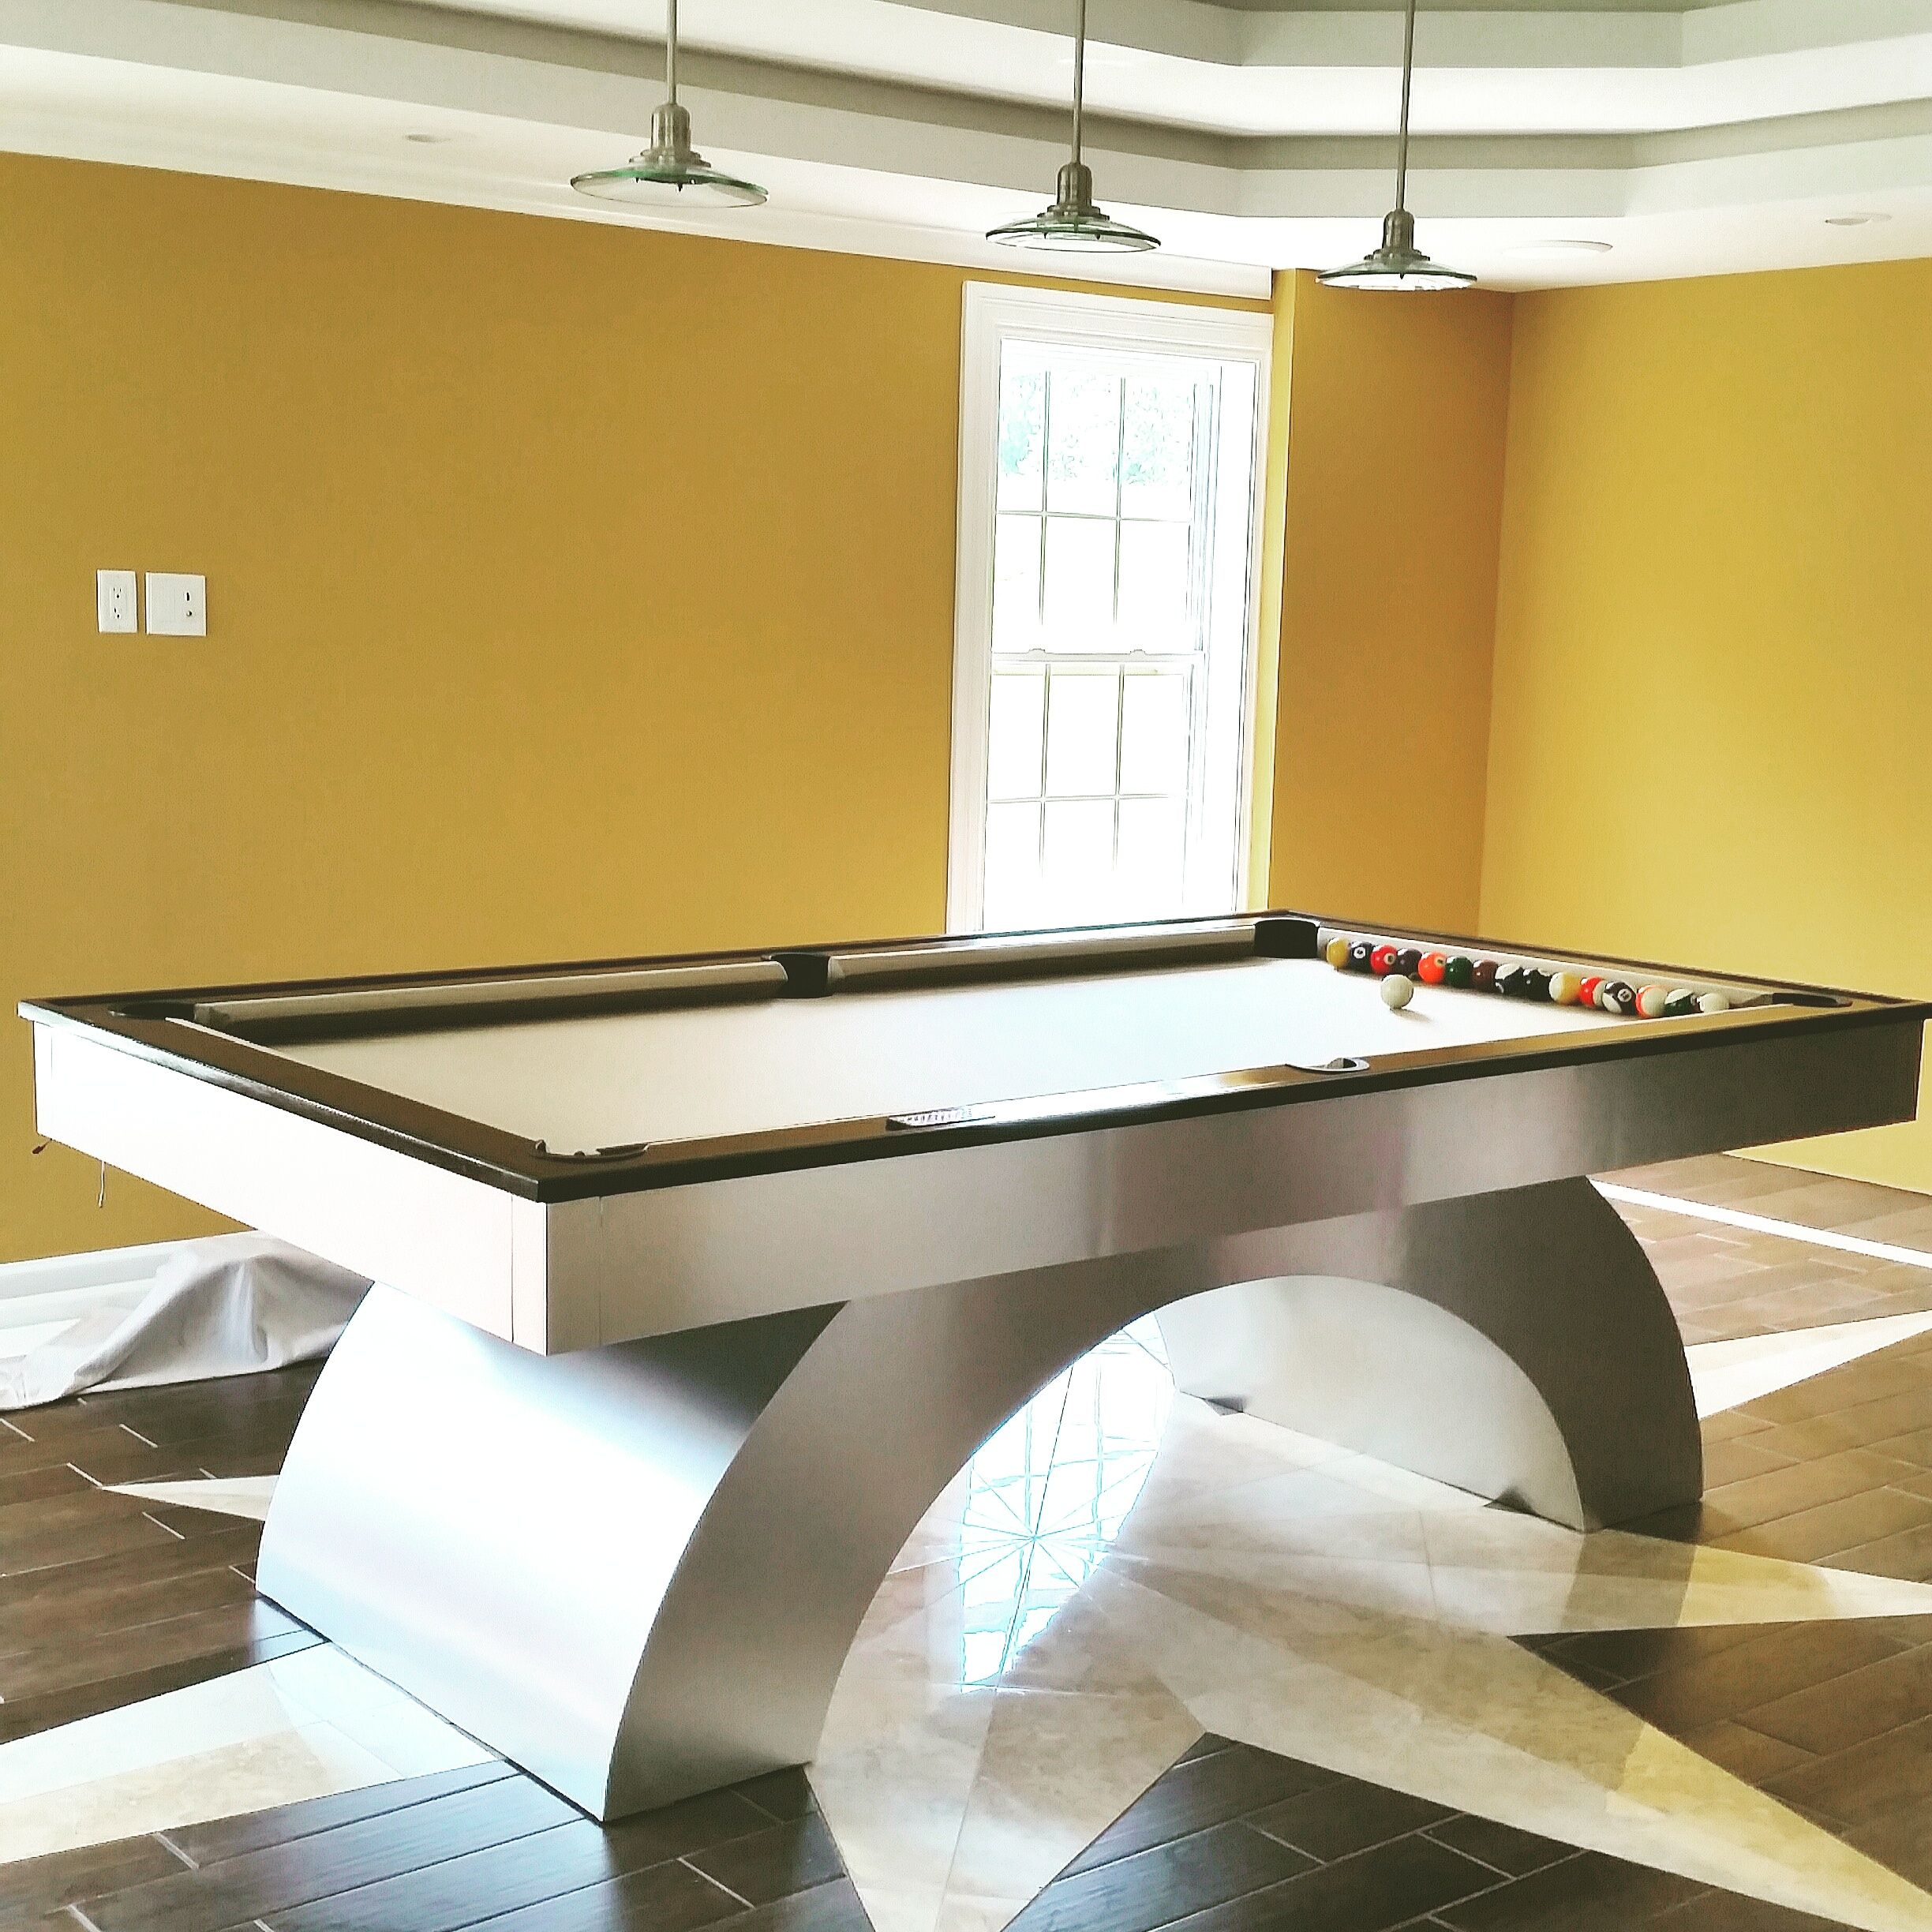 Buy Hand Crafted Ft Arched Pool Table With Led Lights Made To - Lucite pool table